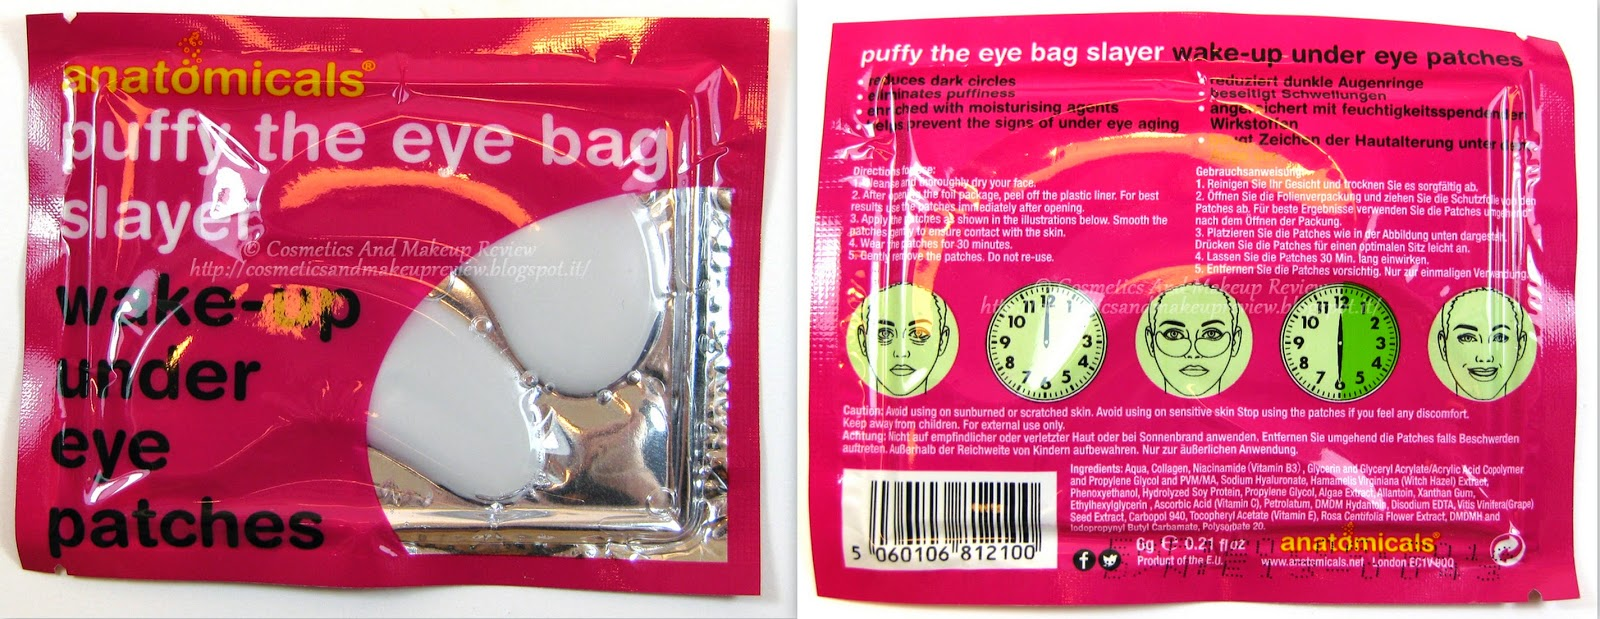 Anatomicals - Puffy The Eye Bag Slayer - Wake-up Under Eye Patches packaging